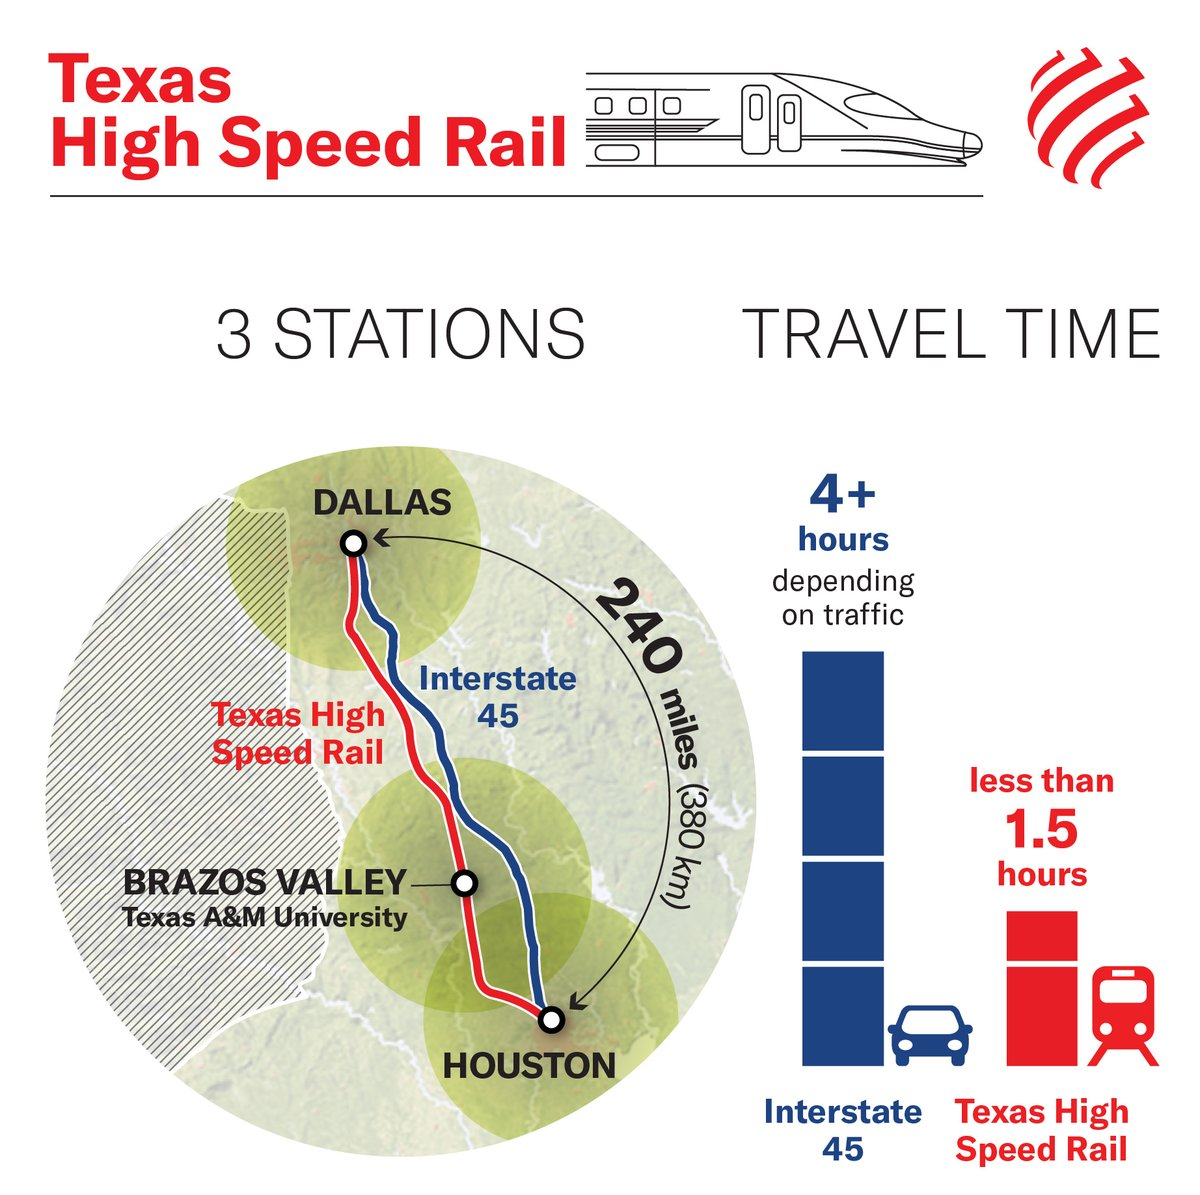 #Texas #HighSpeedRailway will carry travelers b/w #Dallas & #Houston in 90 mins, w/ departures every 30 mins during peak hours & every hour during off-peak times. It is expected to be faster than car & air travel.  Read more: https://t.co/JouUfiogxd  @Webuild_Group @TexasCentral https://t.co/tDVaSpKj5w